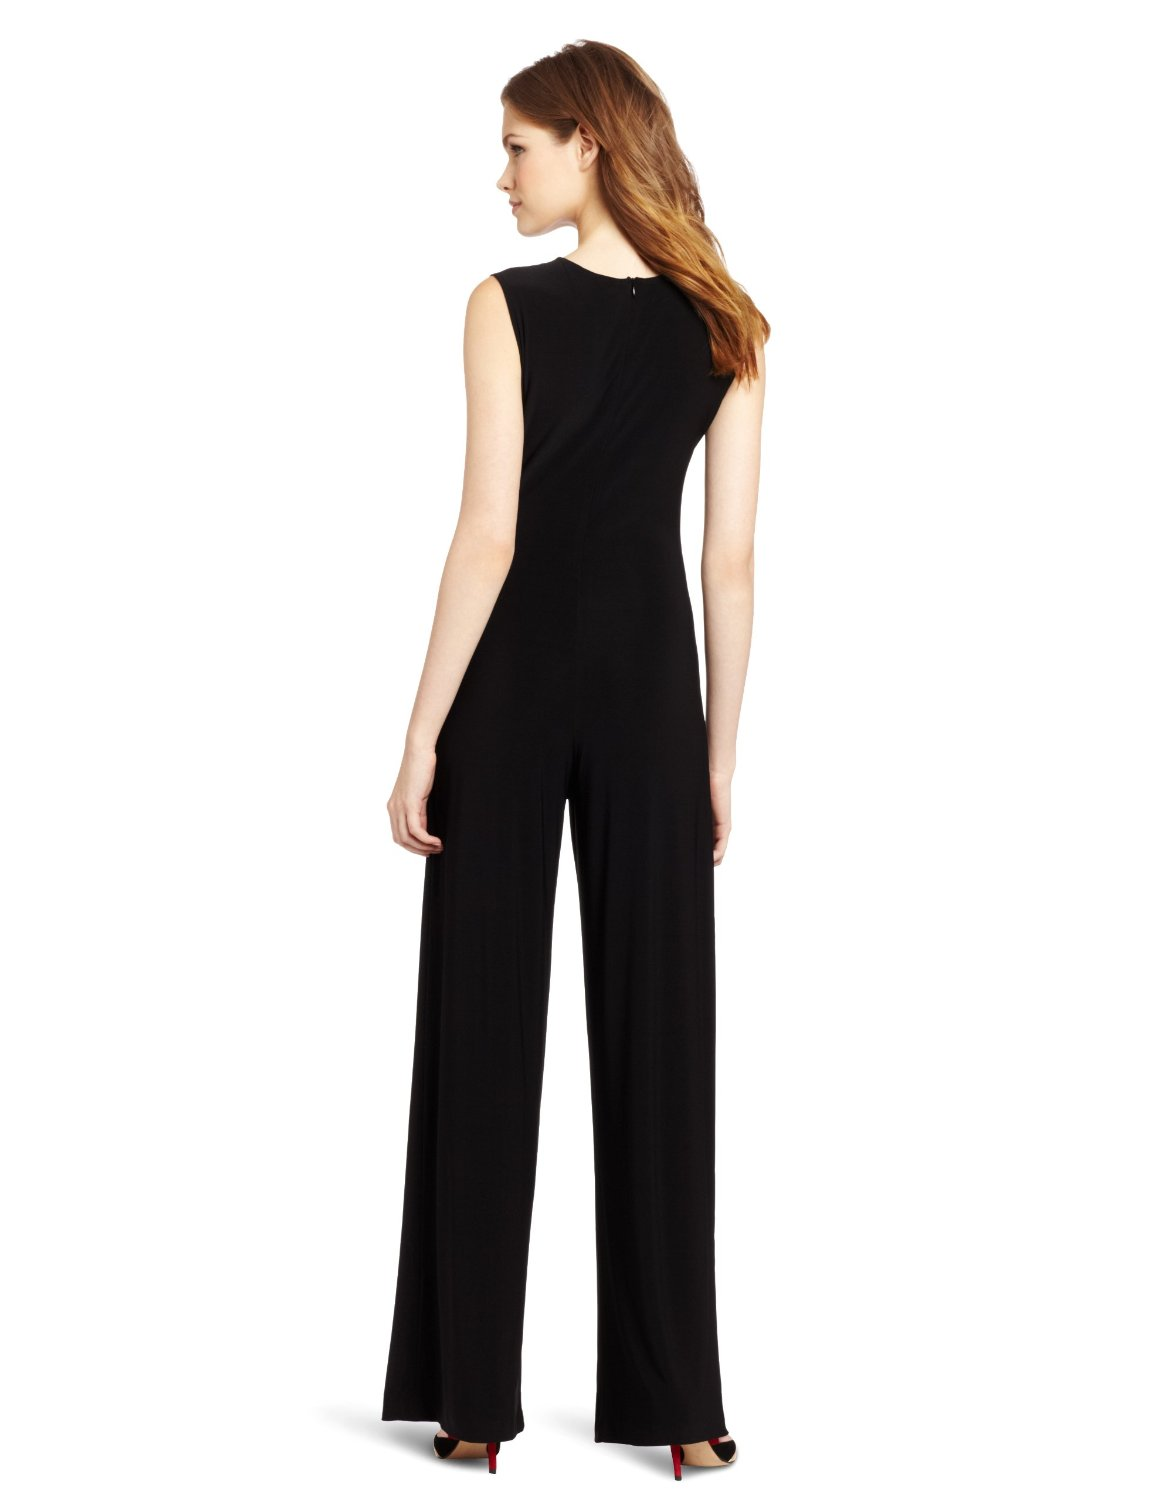 Popular Famous Women Jumpsuits Spring Collection 2013